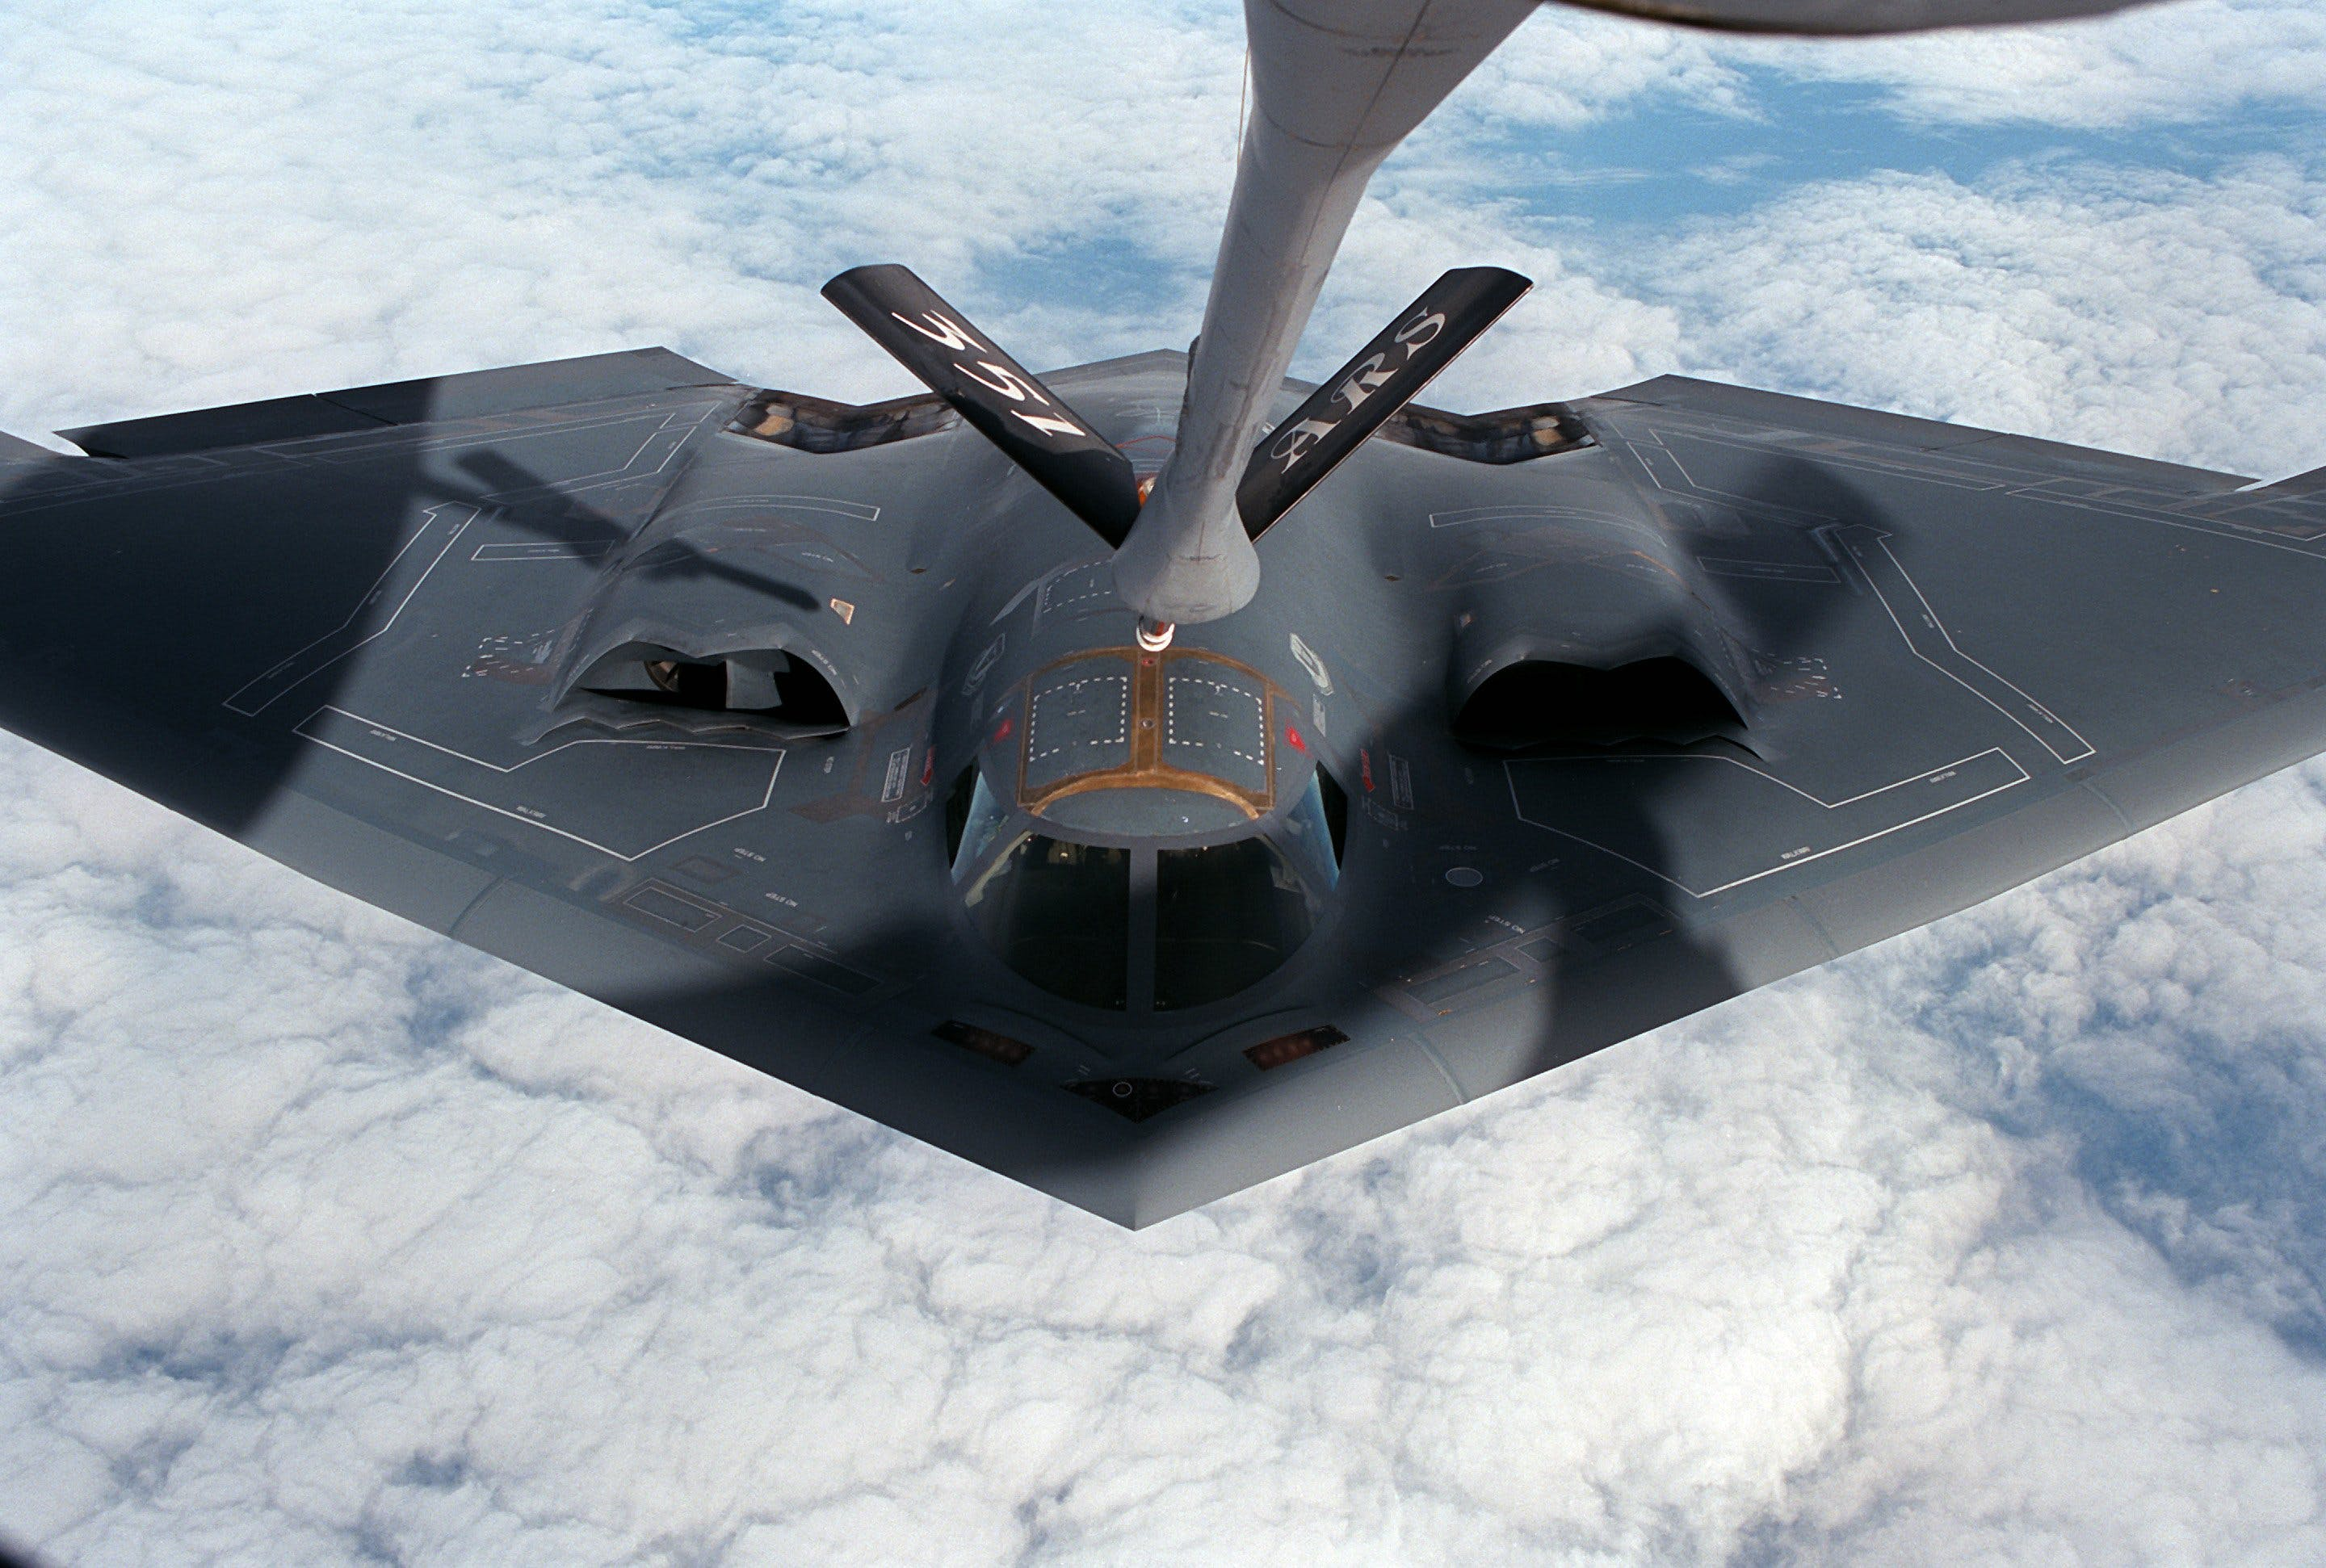 Gray Fighter Drone Above White Clouds